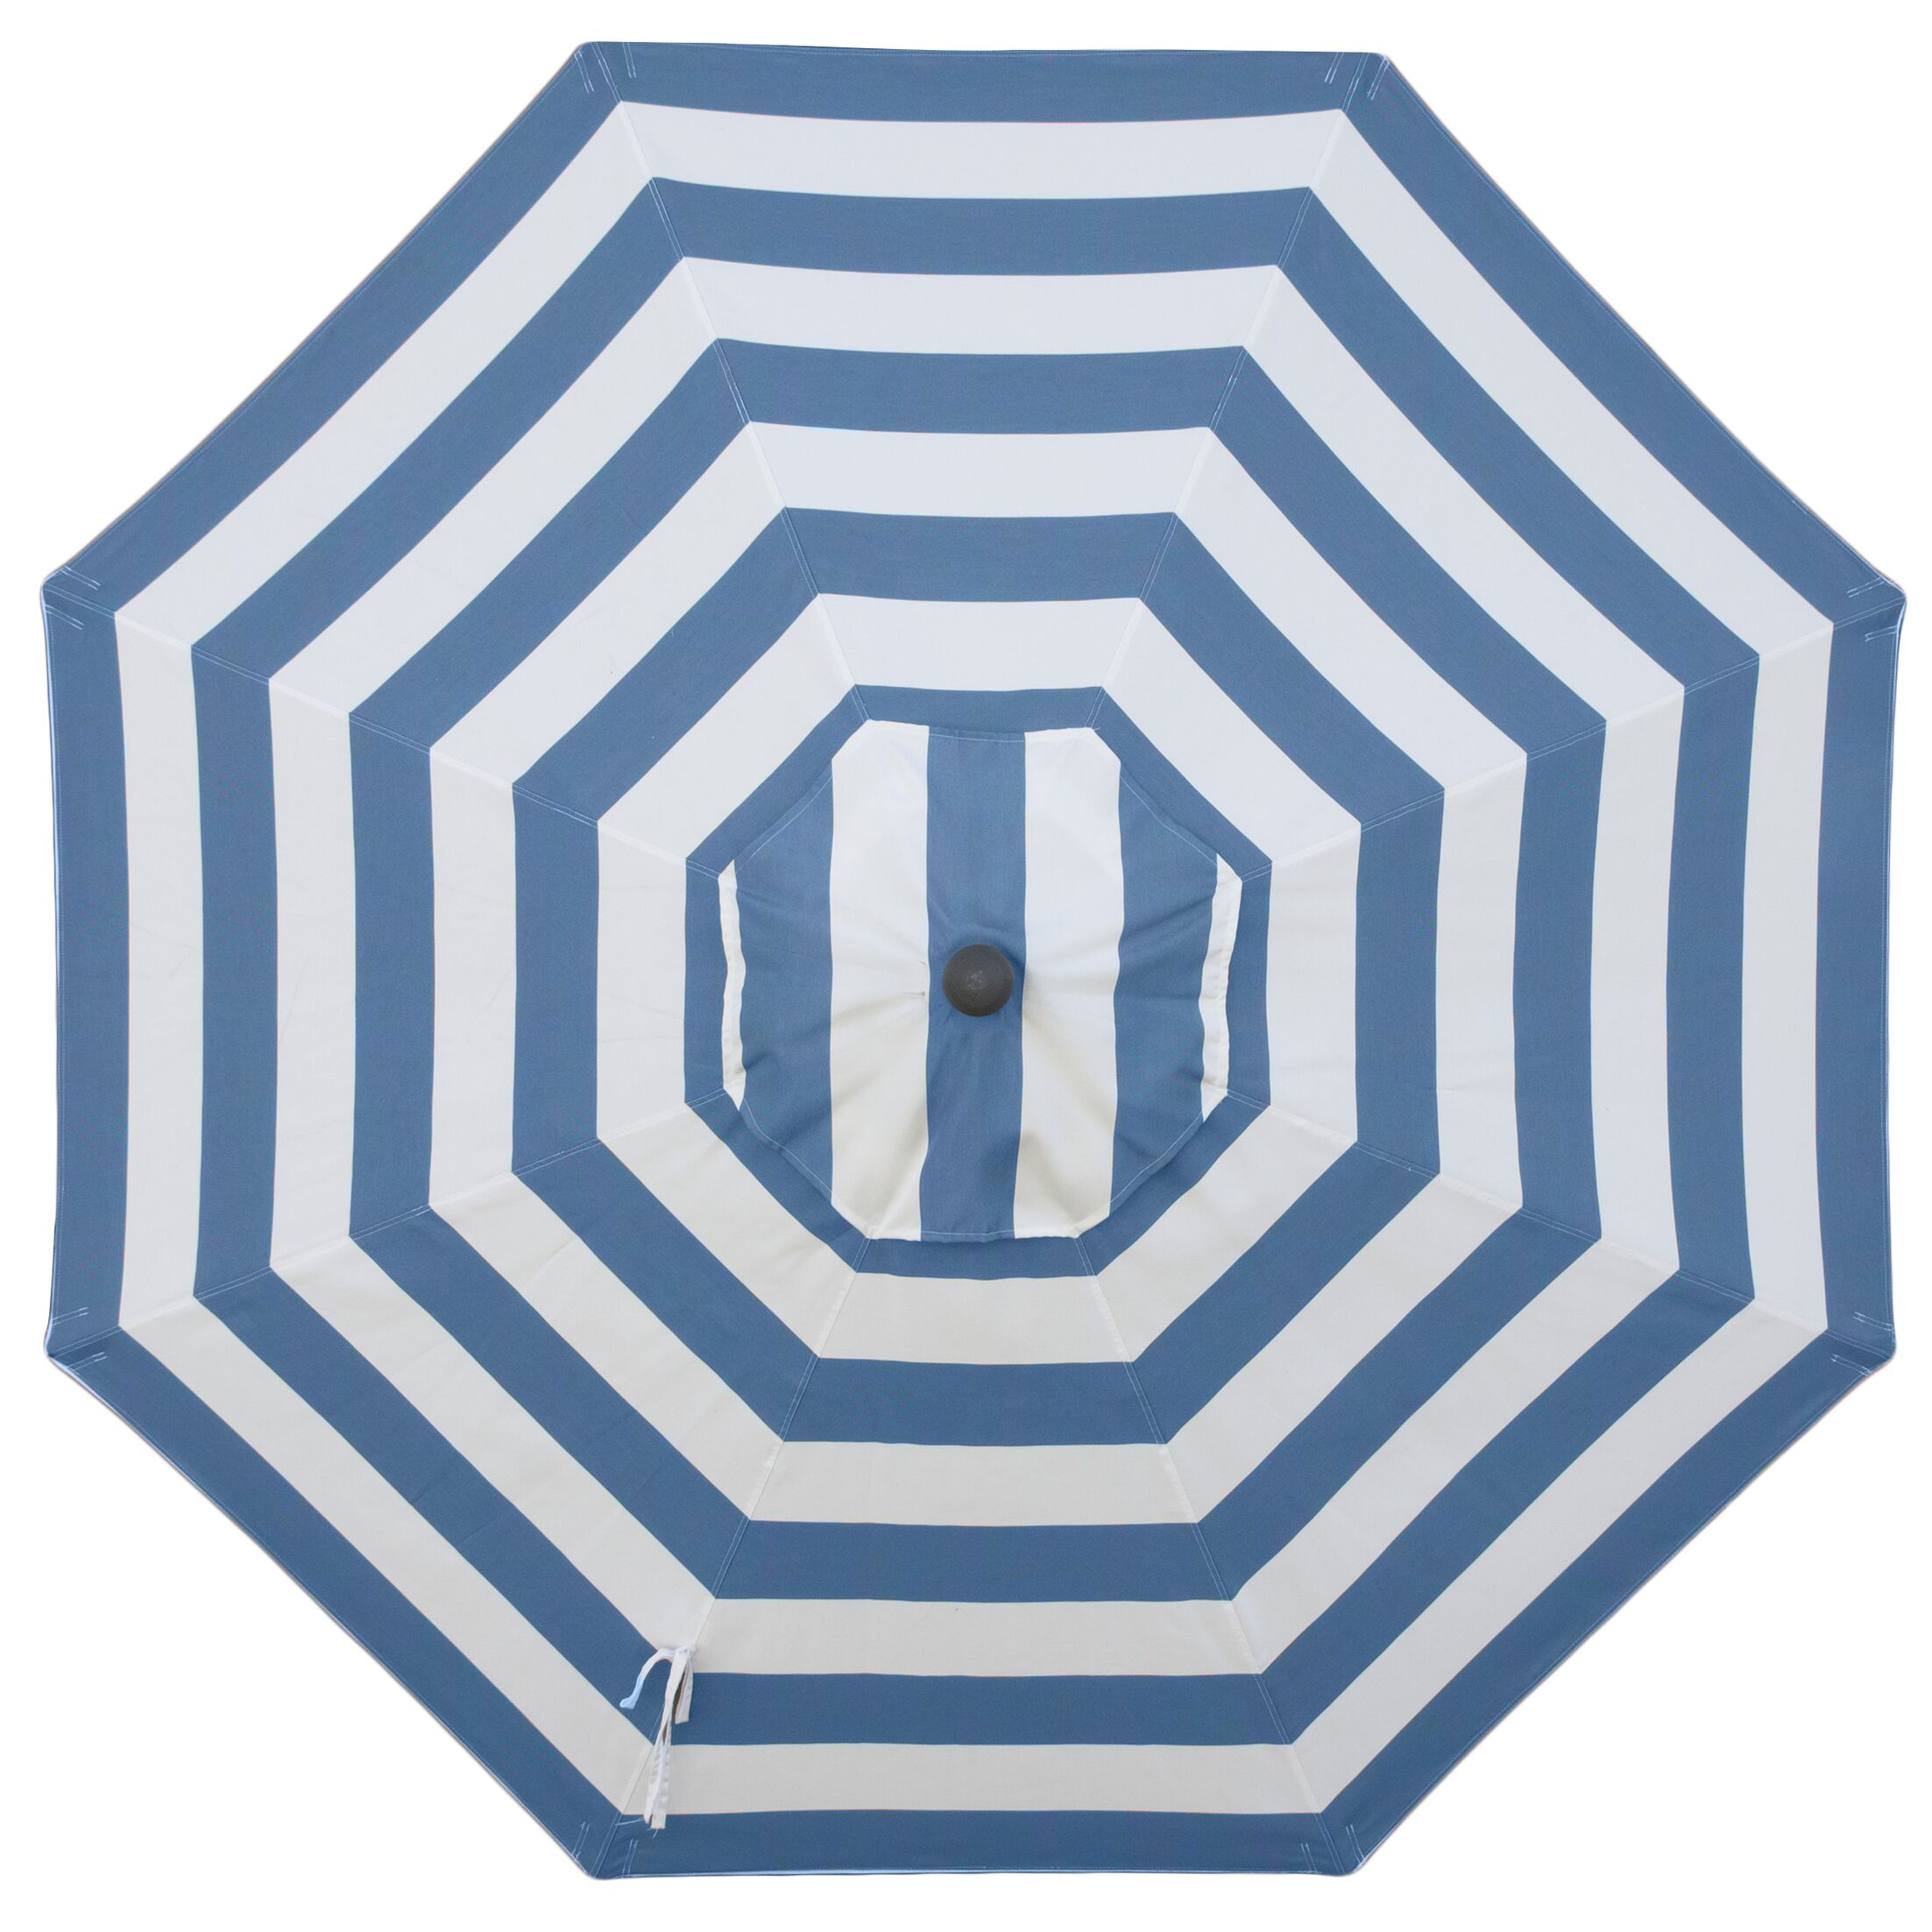 Wiechmann Push Tilt 9' Market Sunbrella Umbrella Fabric Color: Flame, Frame Color: Starring Gray